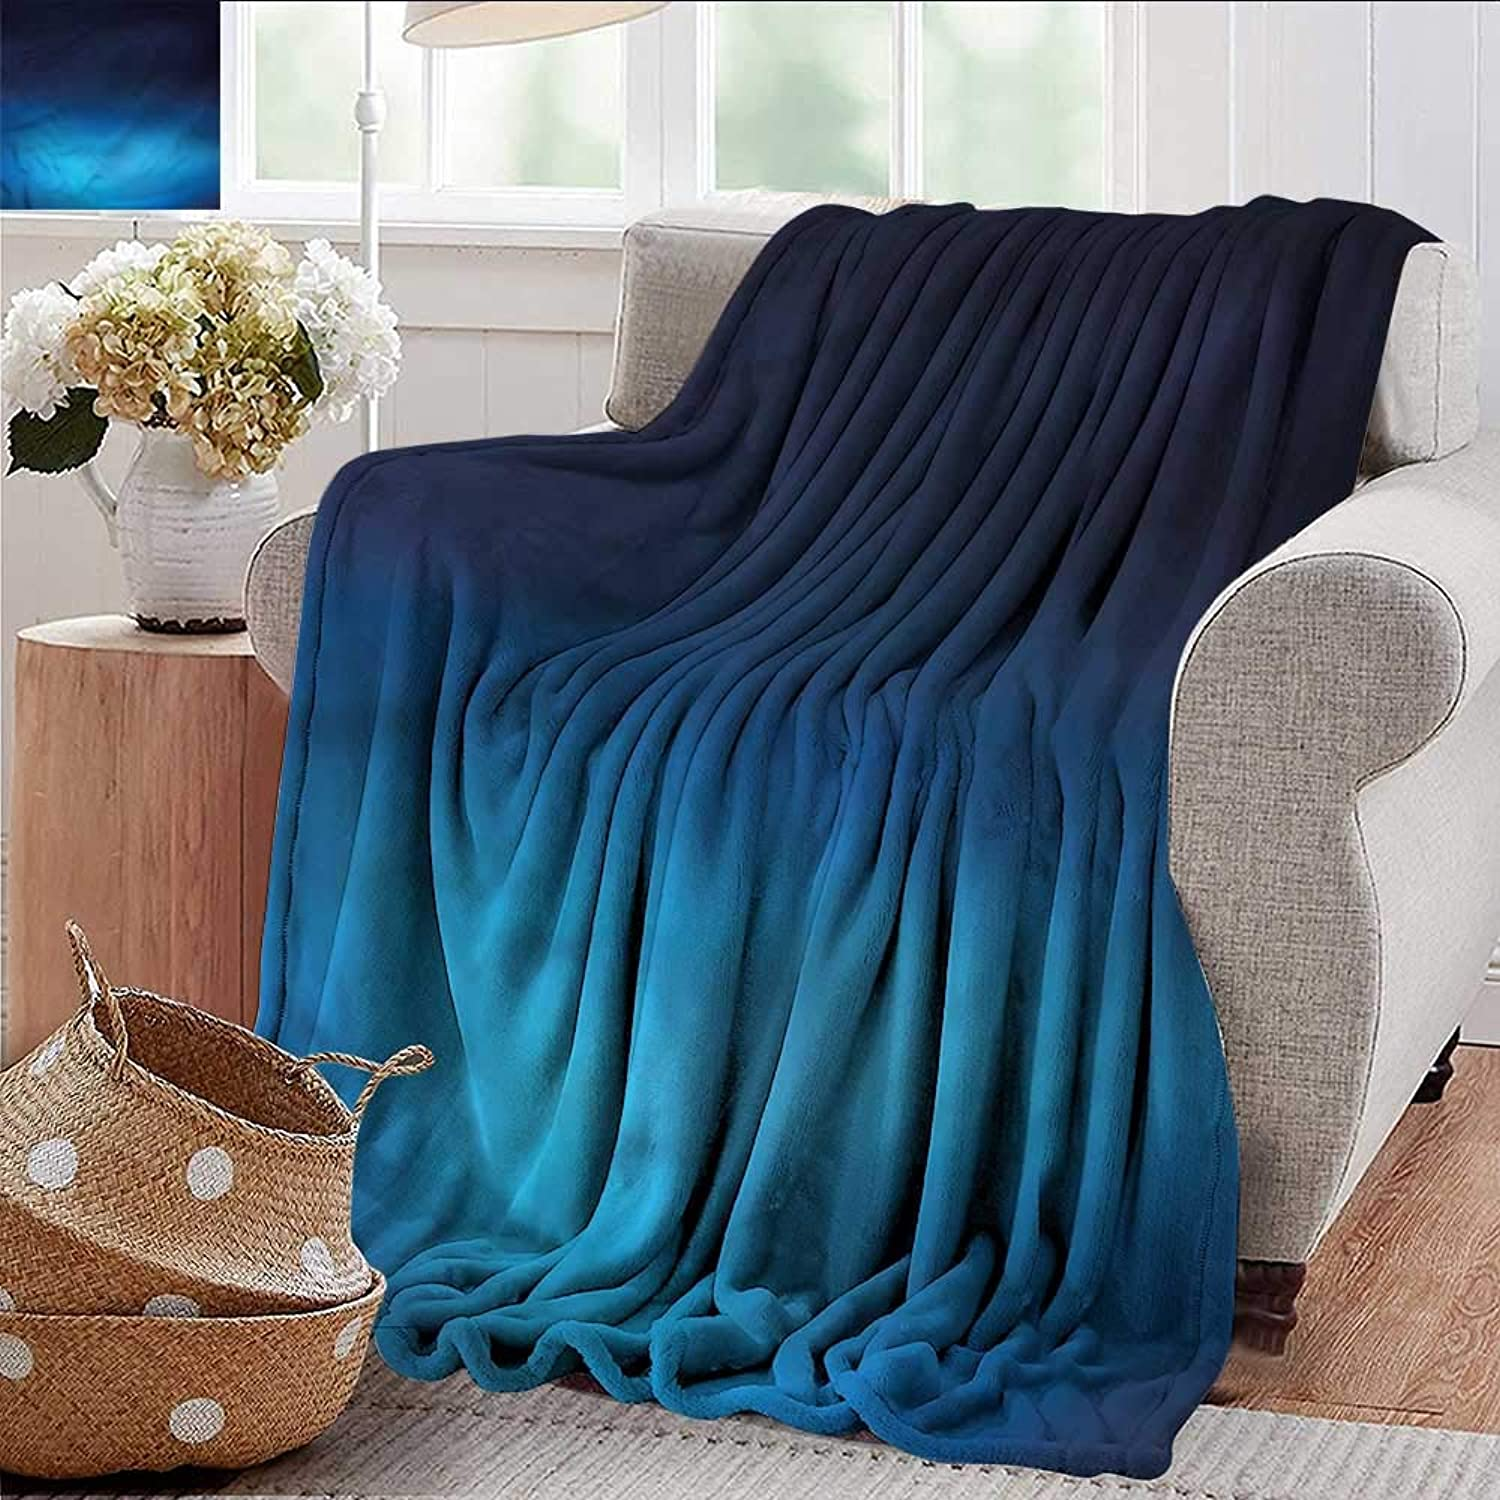 Xaviera Doherty Summer Blanket Navy,bluee Ombre Ocean Inspired Weighted Blanket for Adults Kids, Better Deeper Sleep 35 x60